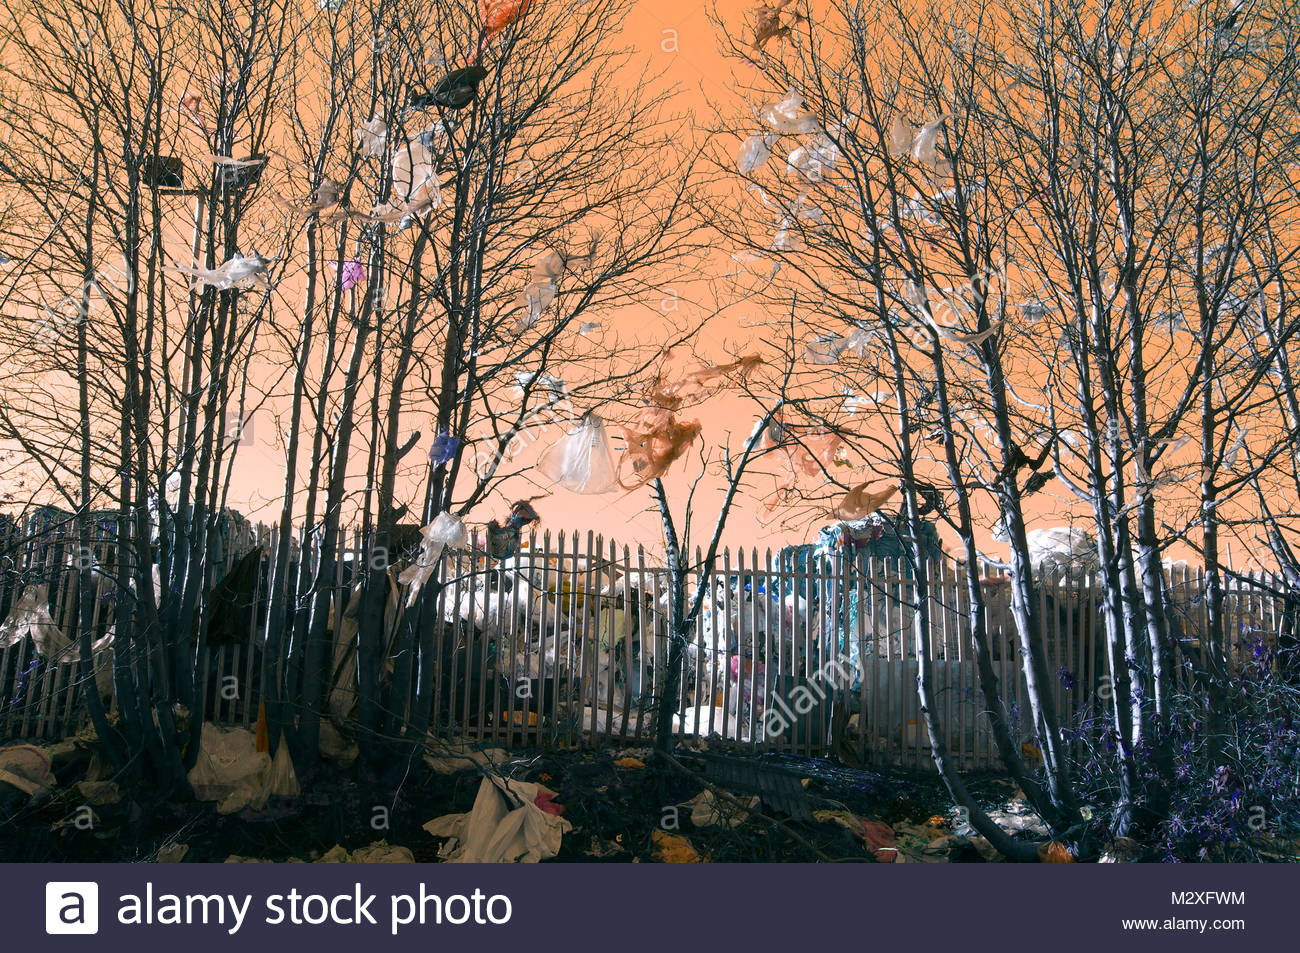 Waste plastic bags and packaging in trees and on ground, adjacent to a recycling facility in Birmingham, West Midlands, - Stock Image